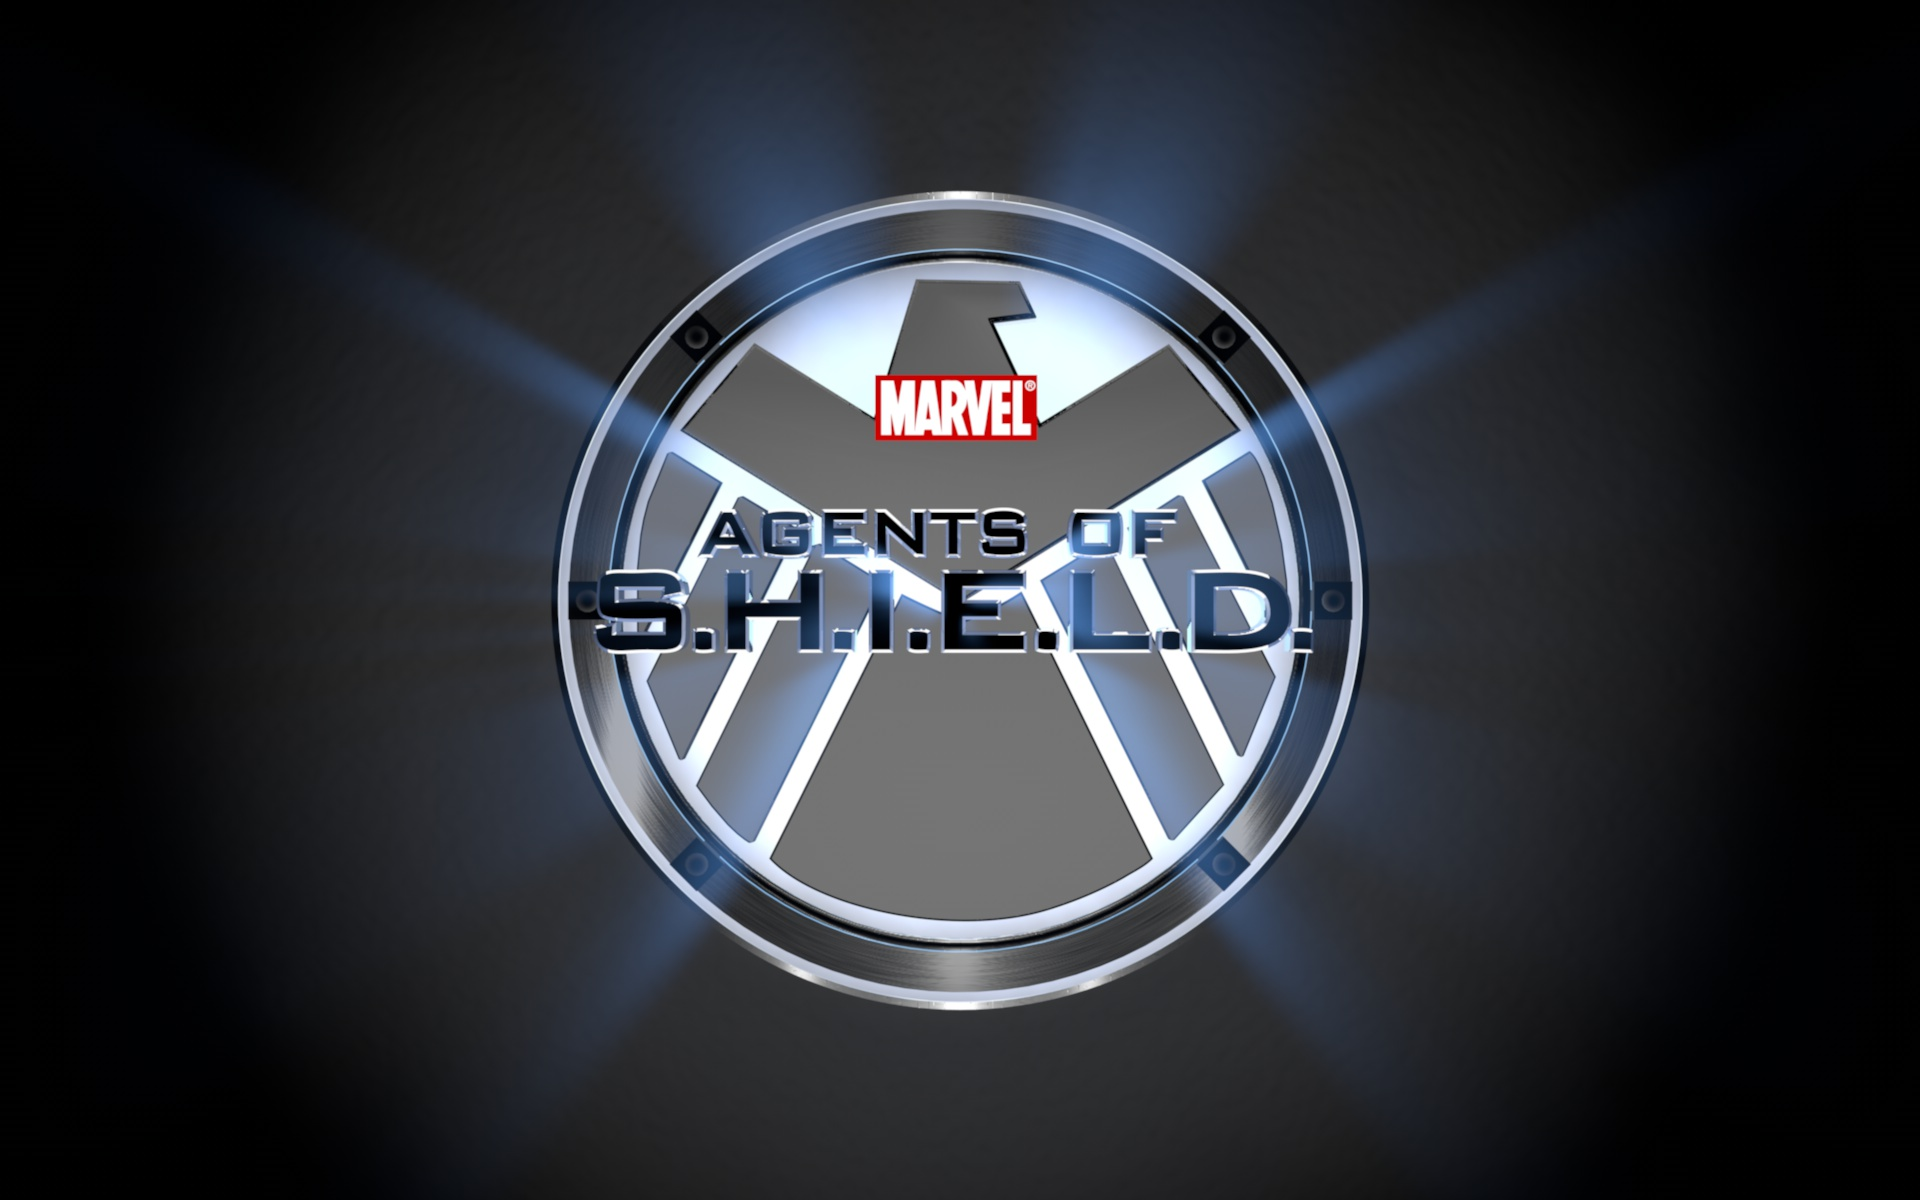 Marvel's Agents of S.H.I.E.L.D - Wallpaper, High ...